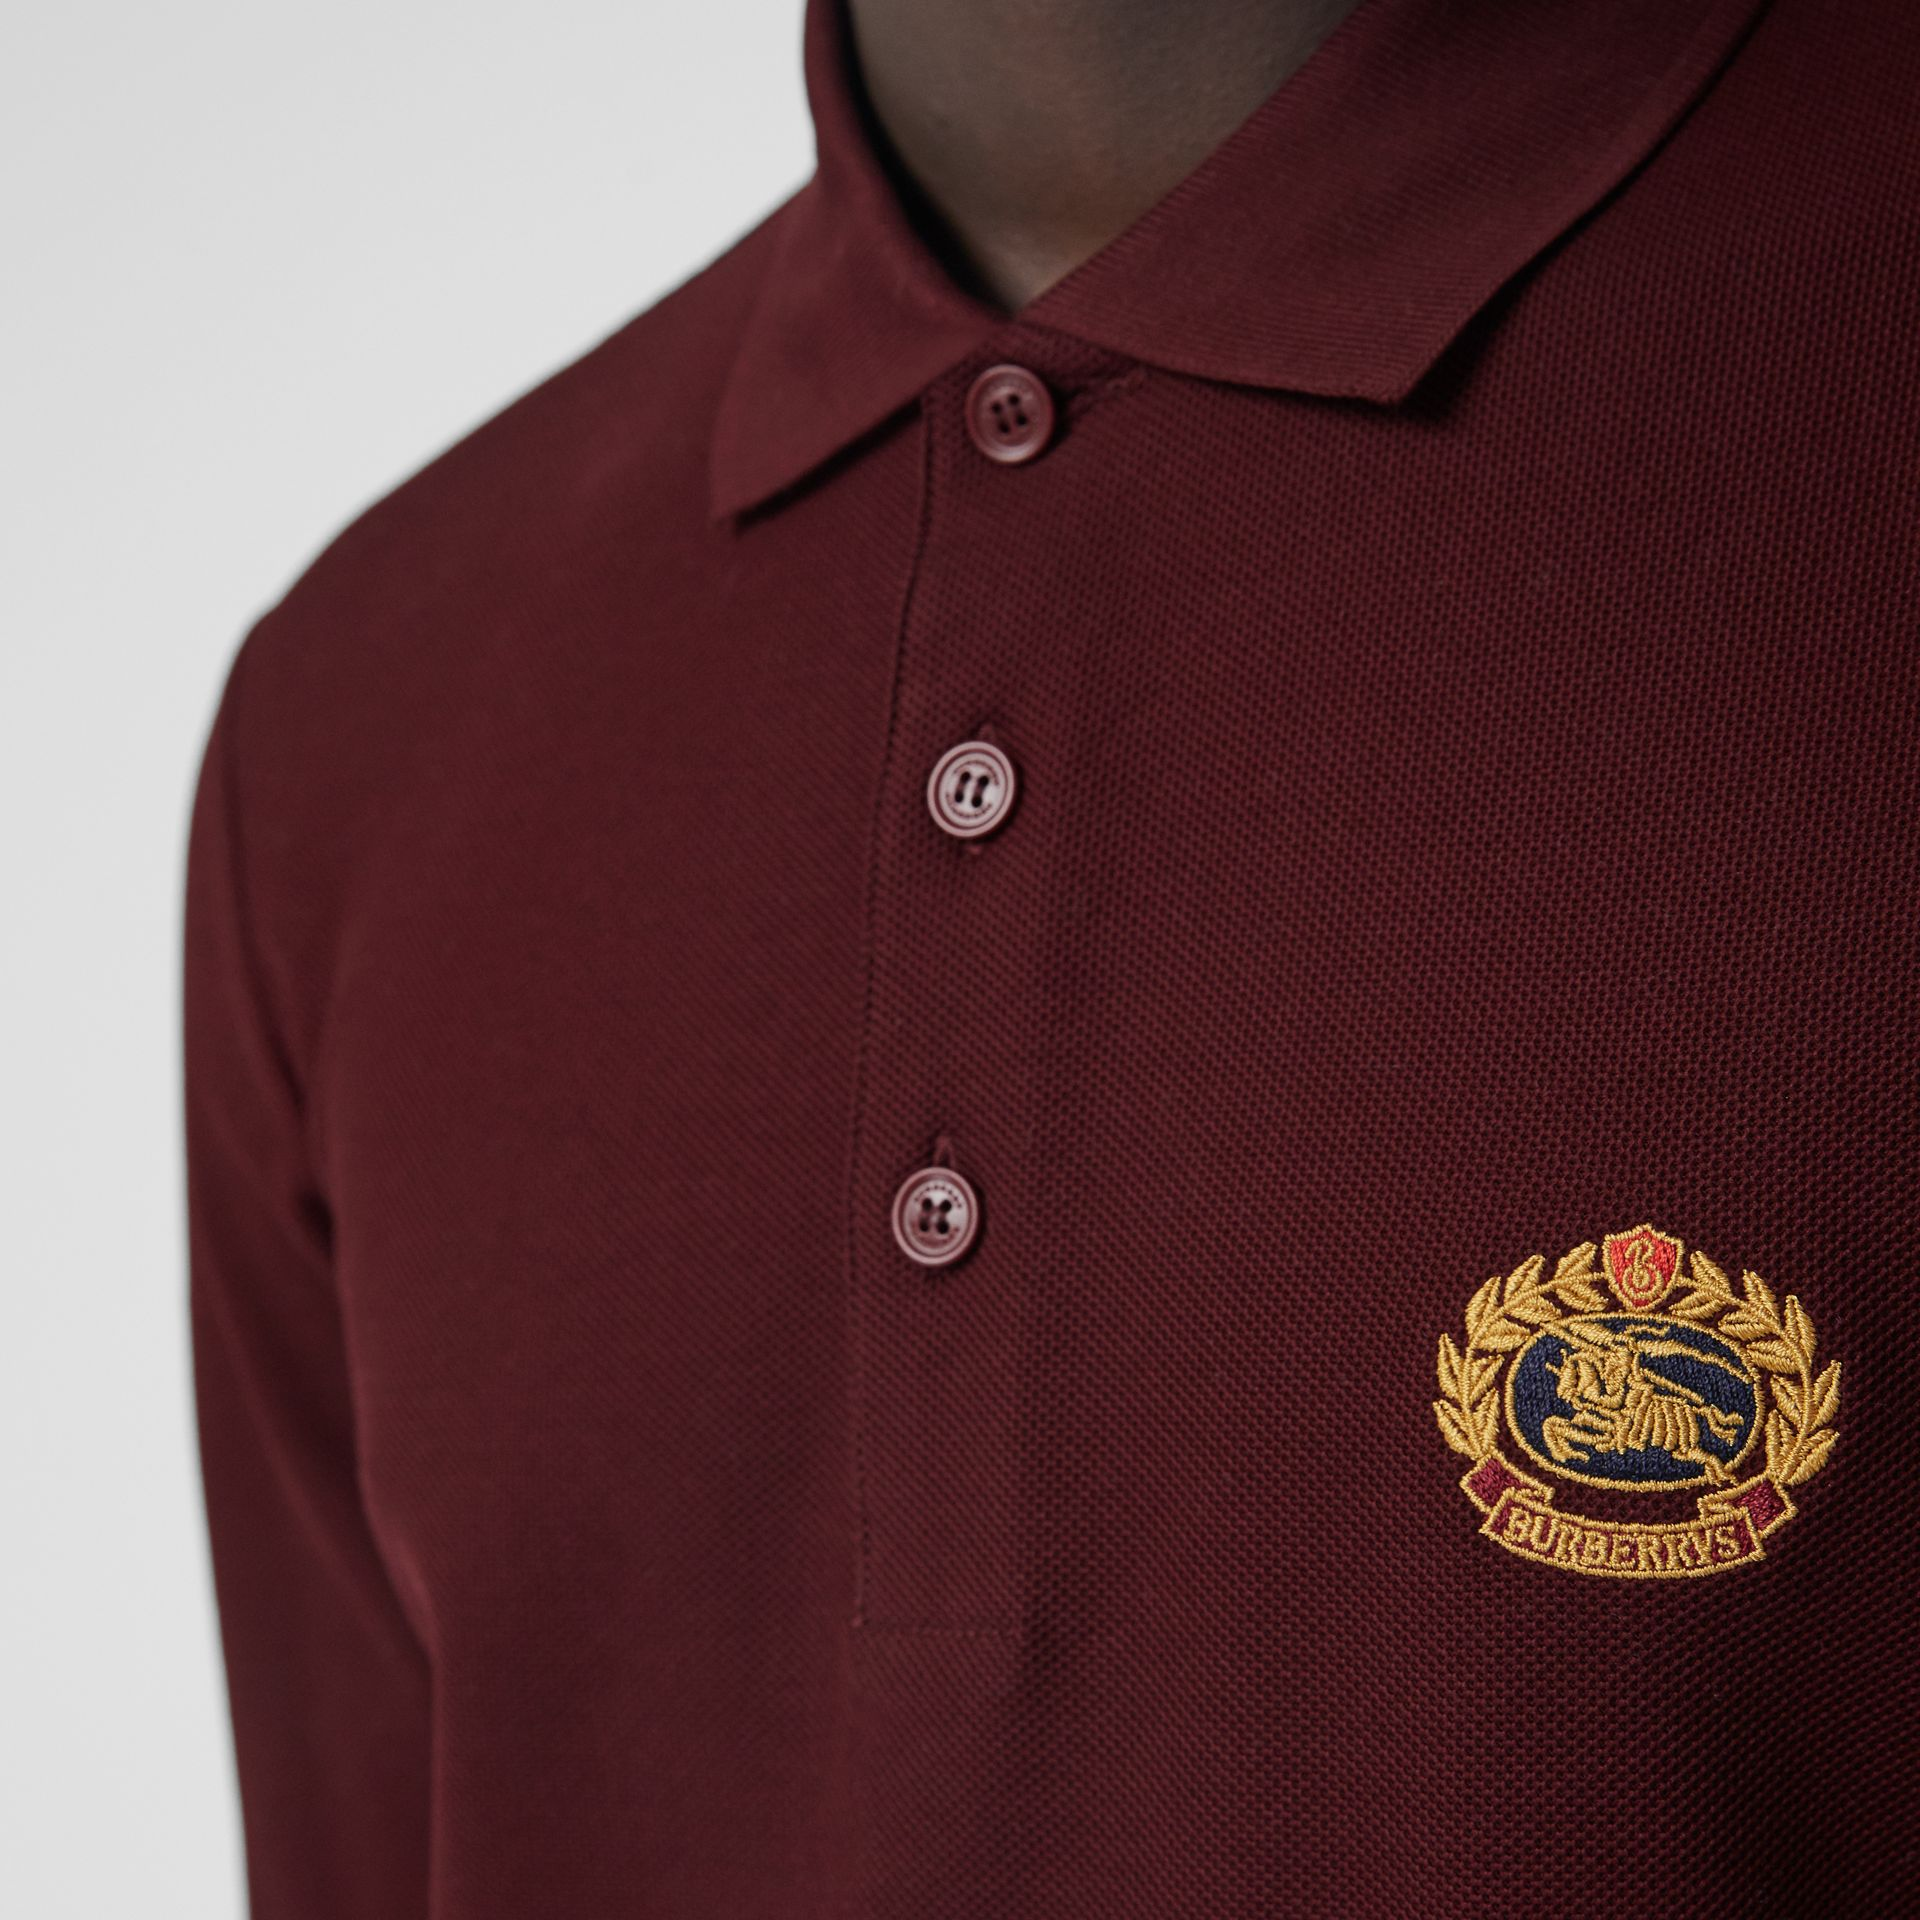 Long-sleeve Archive Logo Cotton Piqué Polo Shirt in Burgundy - Men | Burberry - gallery image 1